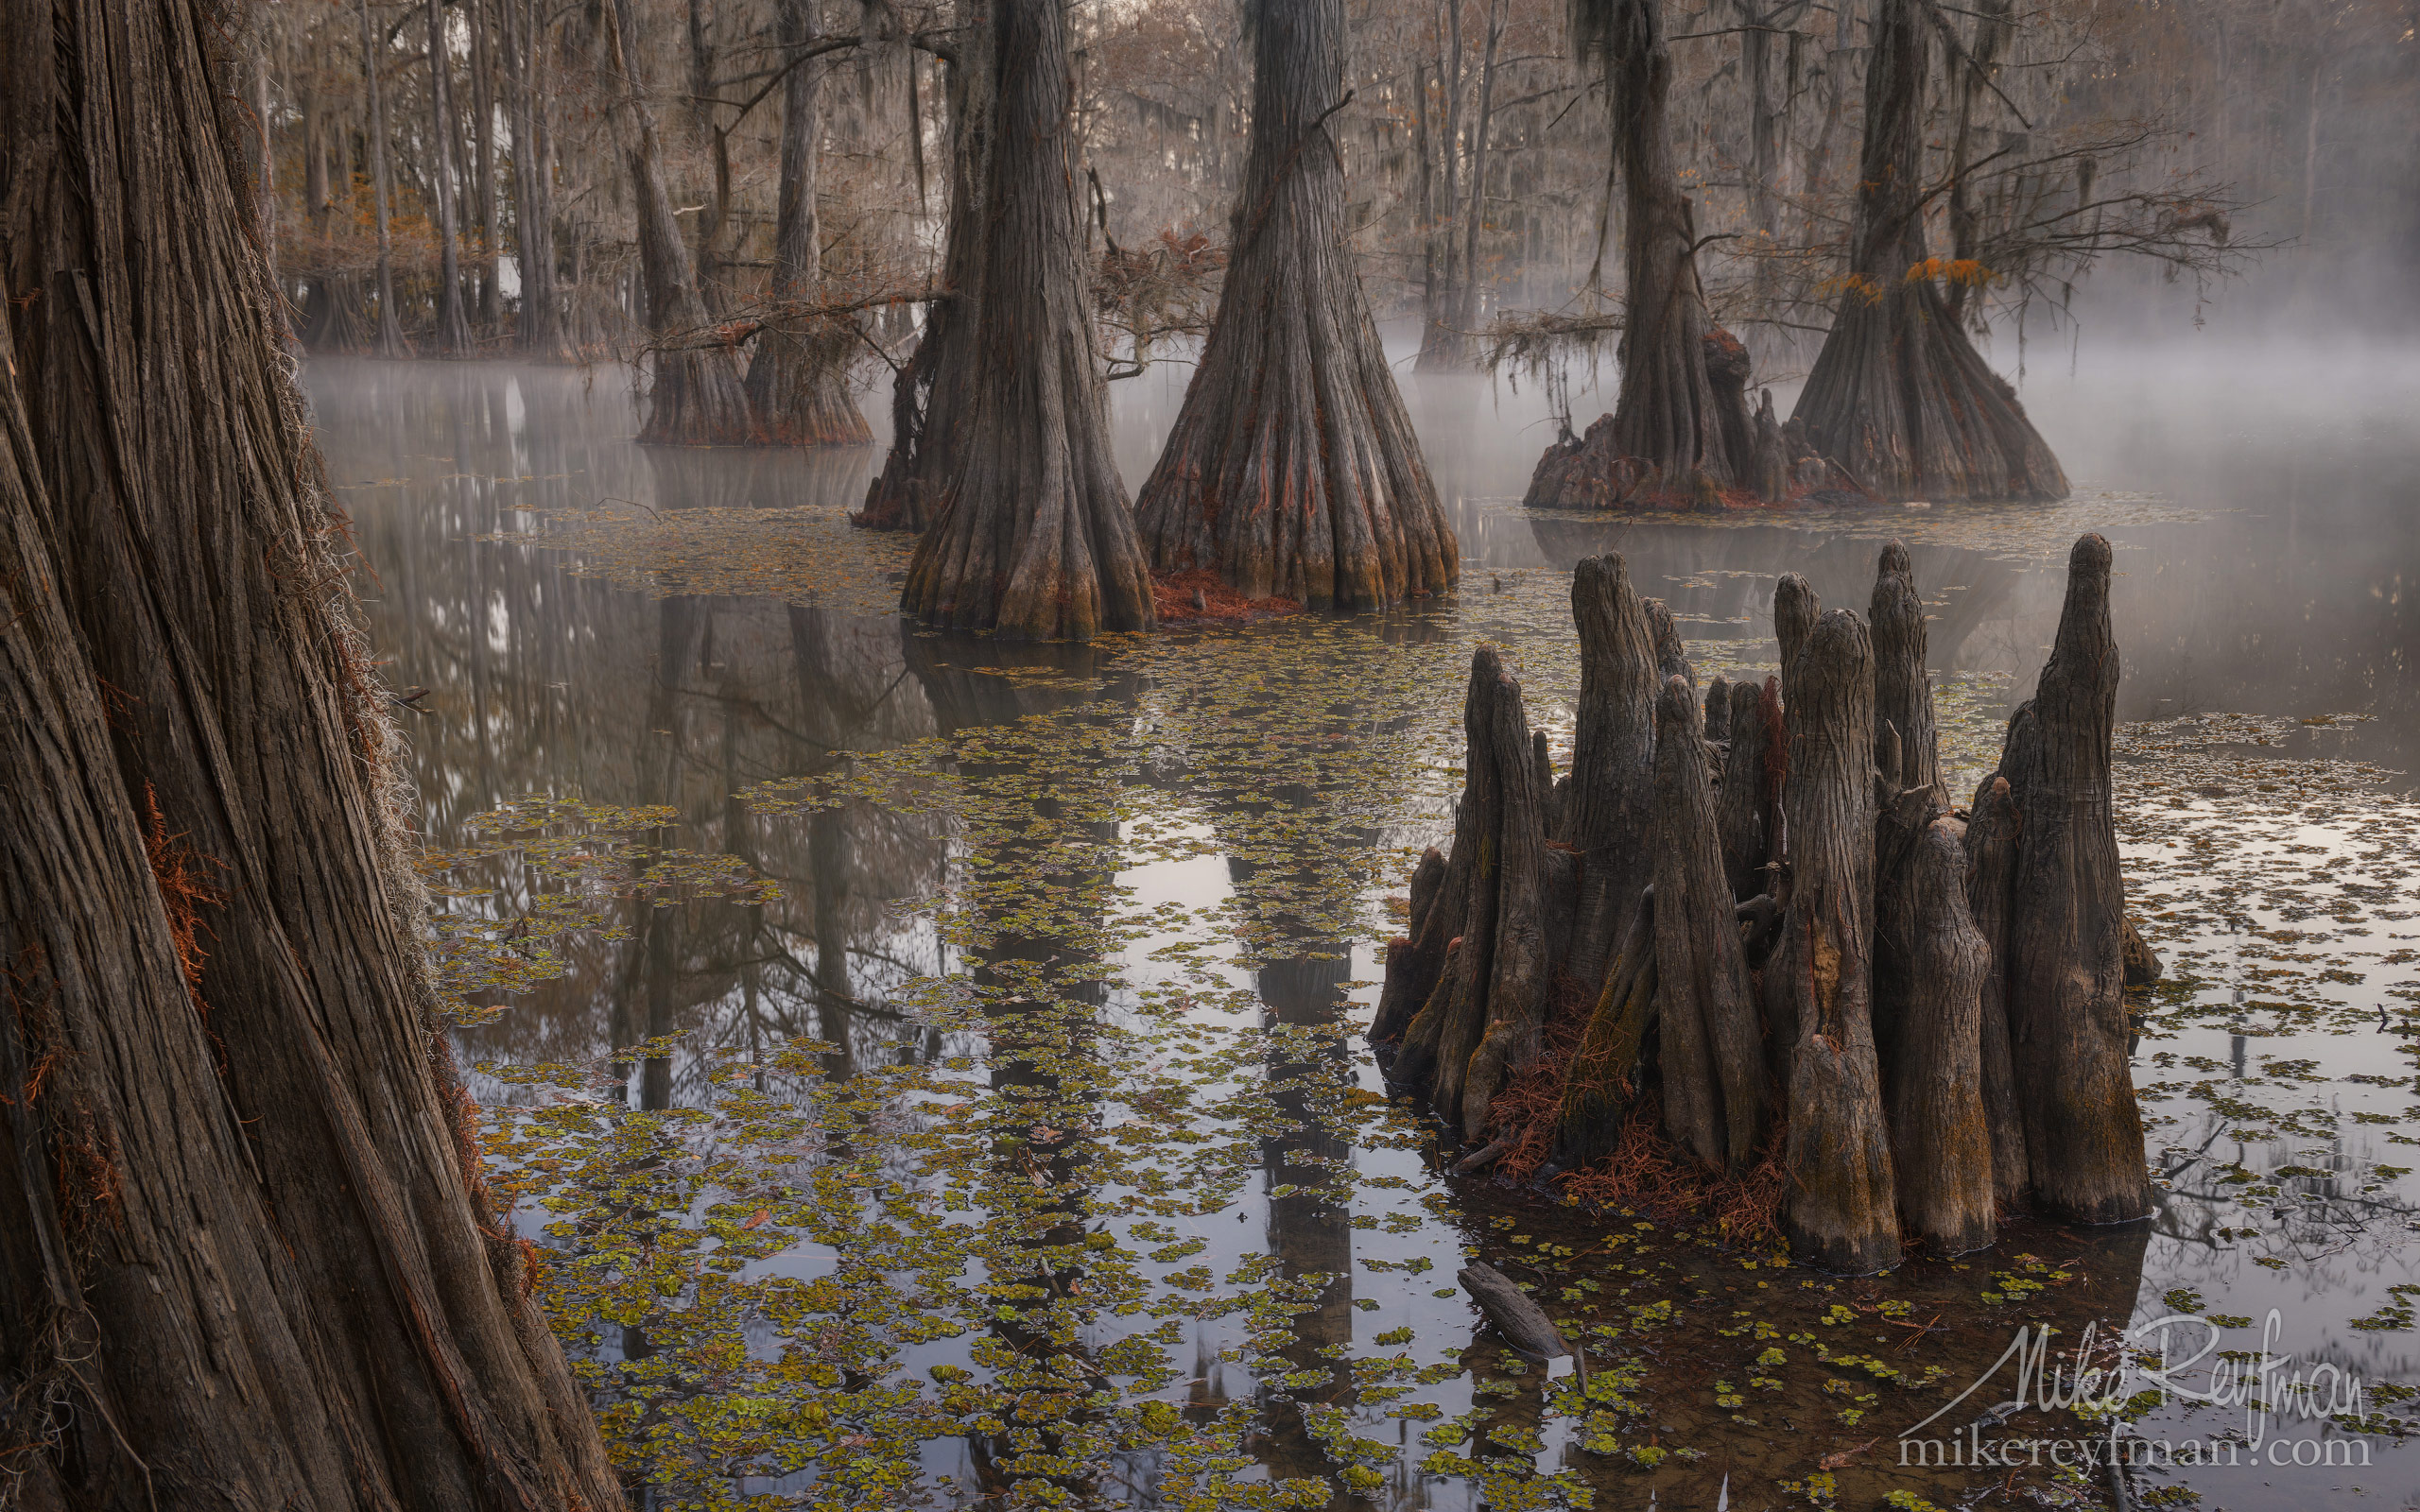 Swamp King's Crown. Bald Cypress trees in the swamp. Foggy morning on Caddo Lake, Texas, US 003-LT1-50A3239.jpg - Bold Cypress and Tupelo Trees in the swamps of Atchafalaya River Basin. Caddo, Martin and Fousse Lakes. Texas/Louisiana, USA. - Mike Reyfman Photography